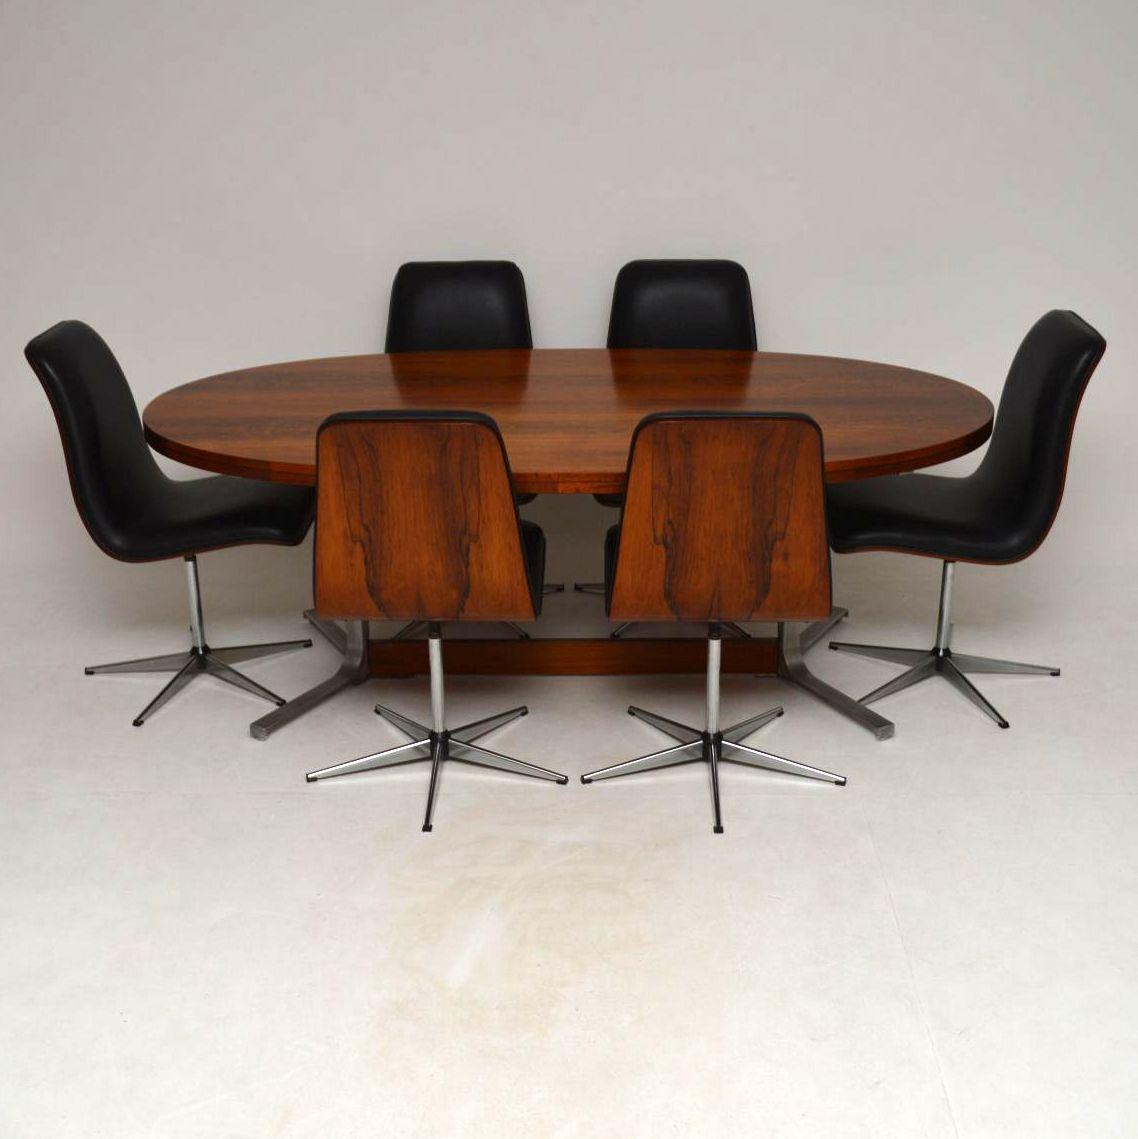 1960 S Vintage Rosewood Dining Table Chairs By Robert Heritage For Archie Shine